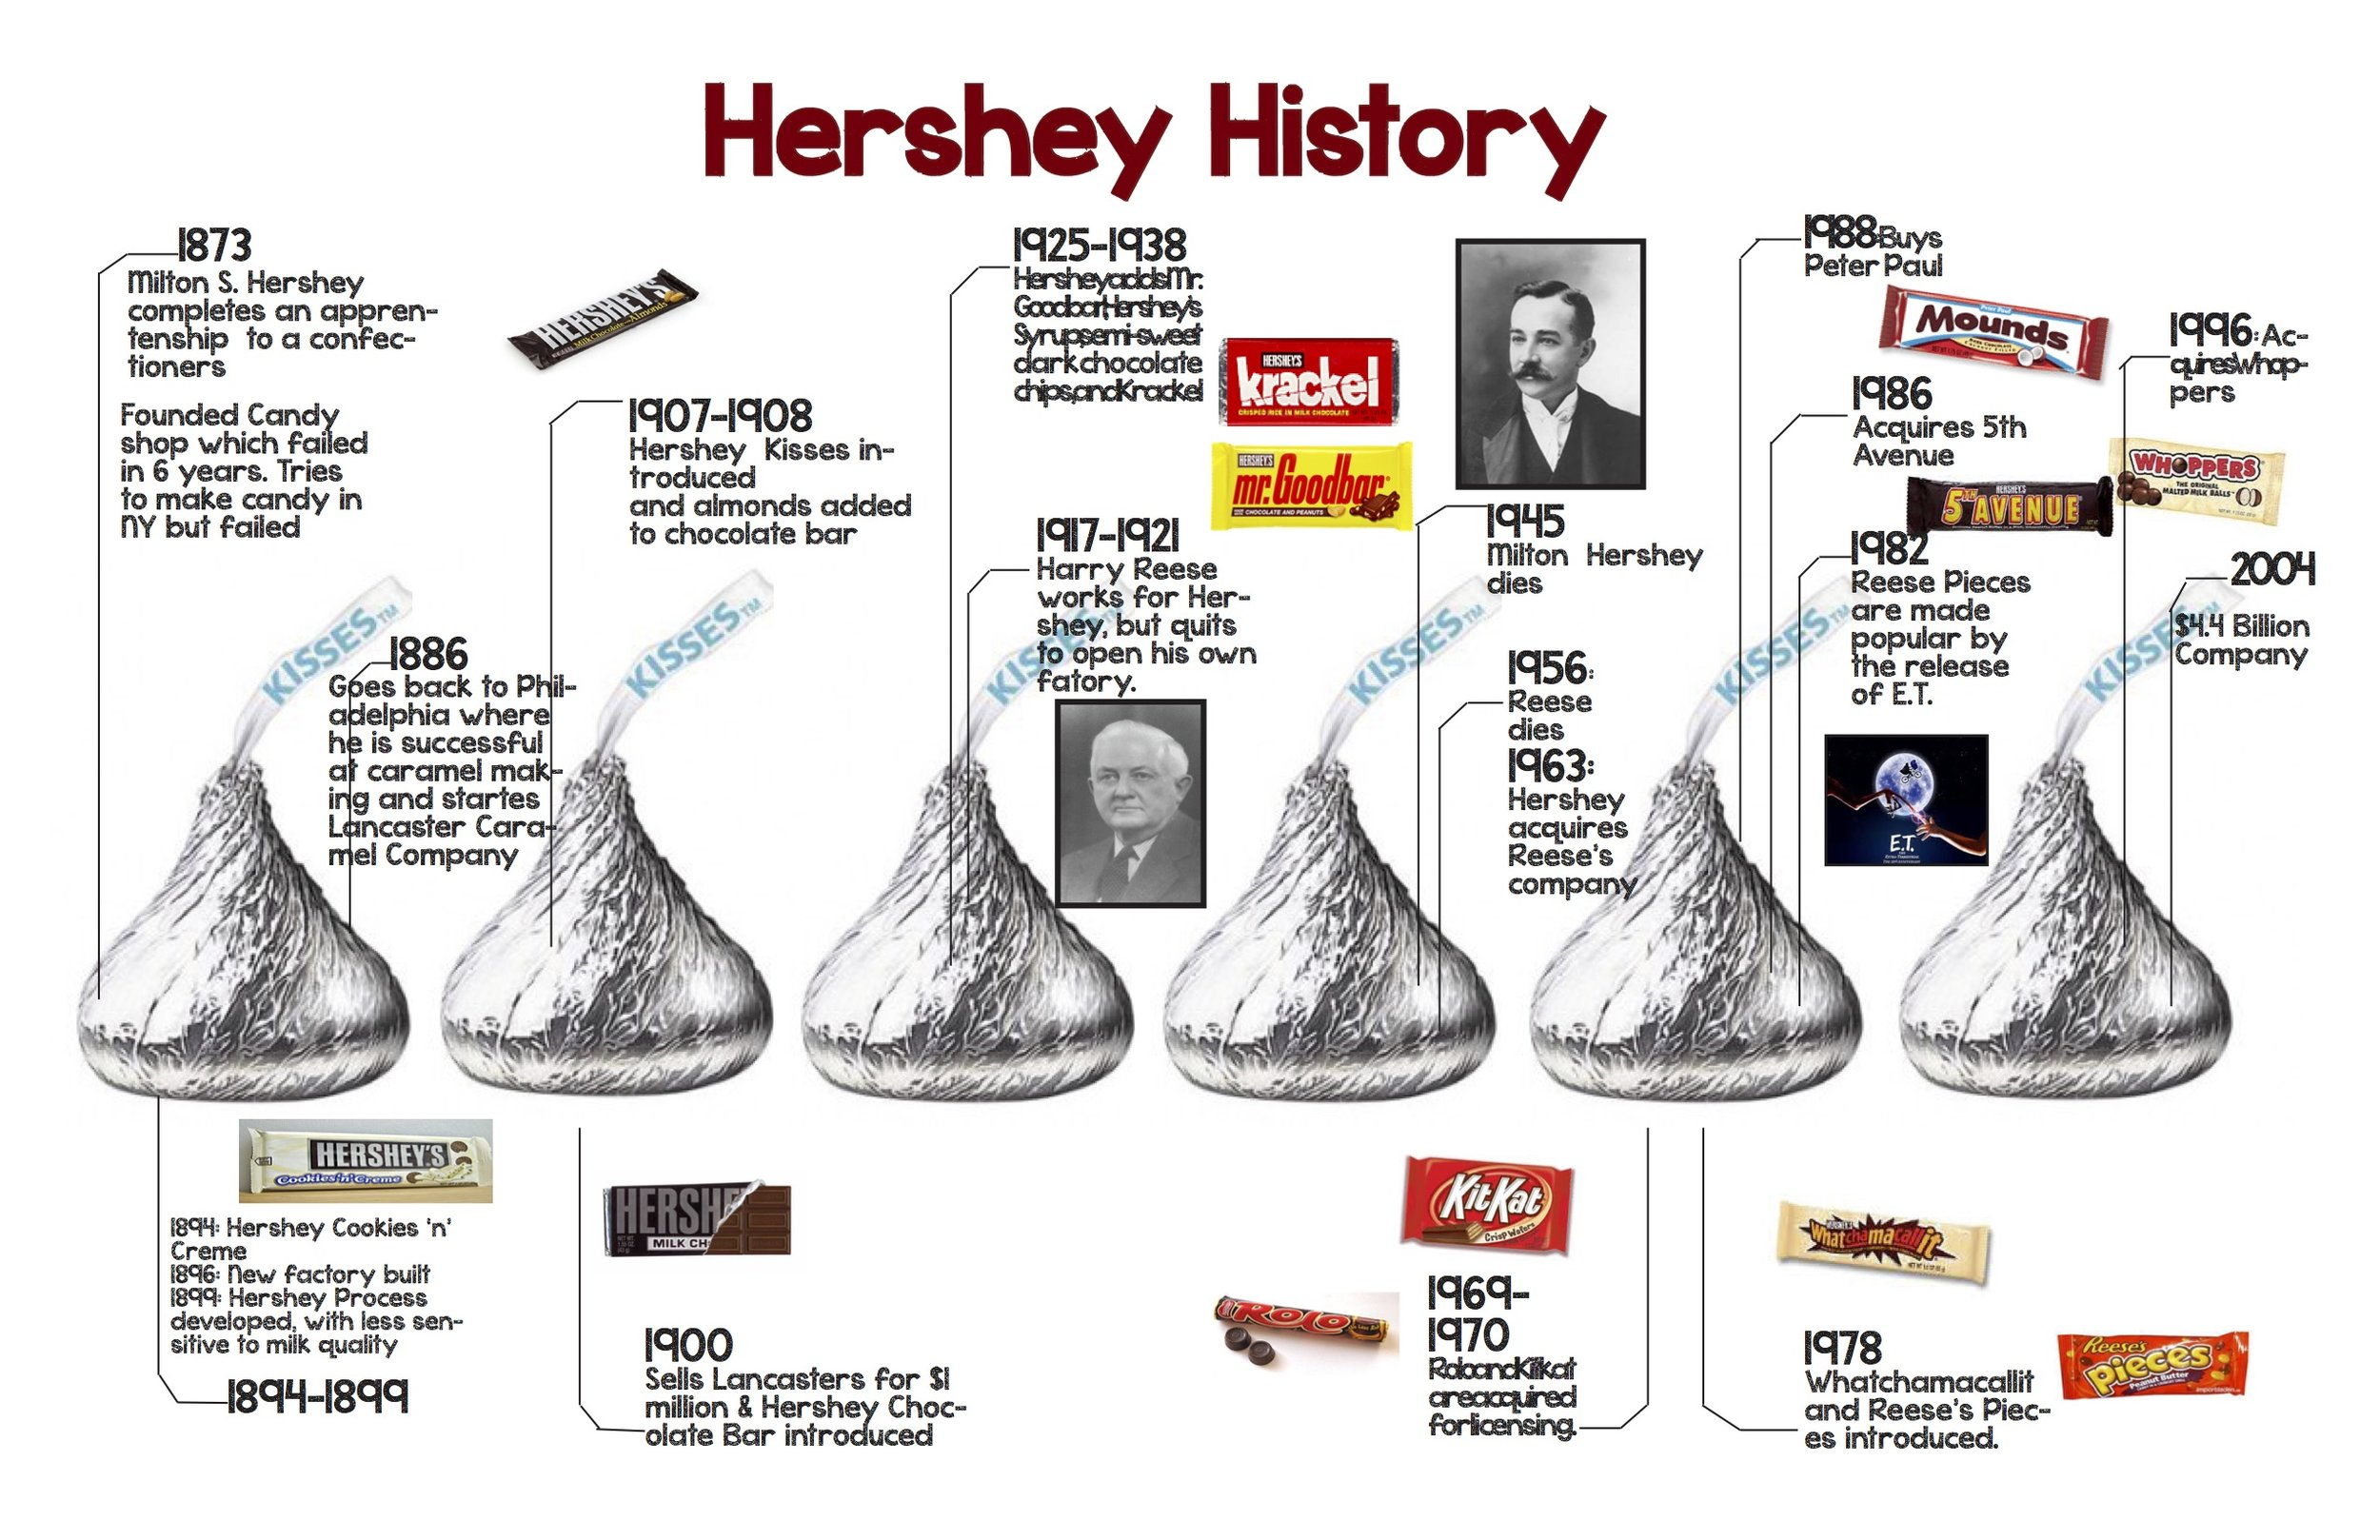 To complete this detailed design for the timeline of Hershey, inDesign and Photoshop were used.